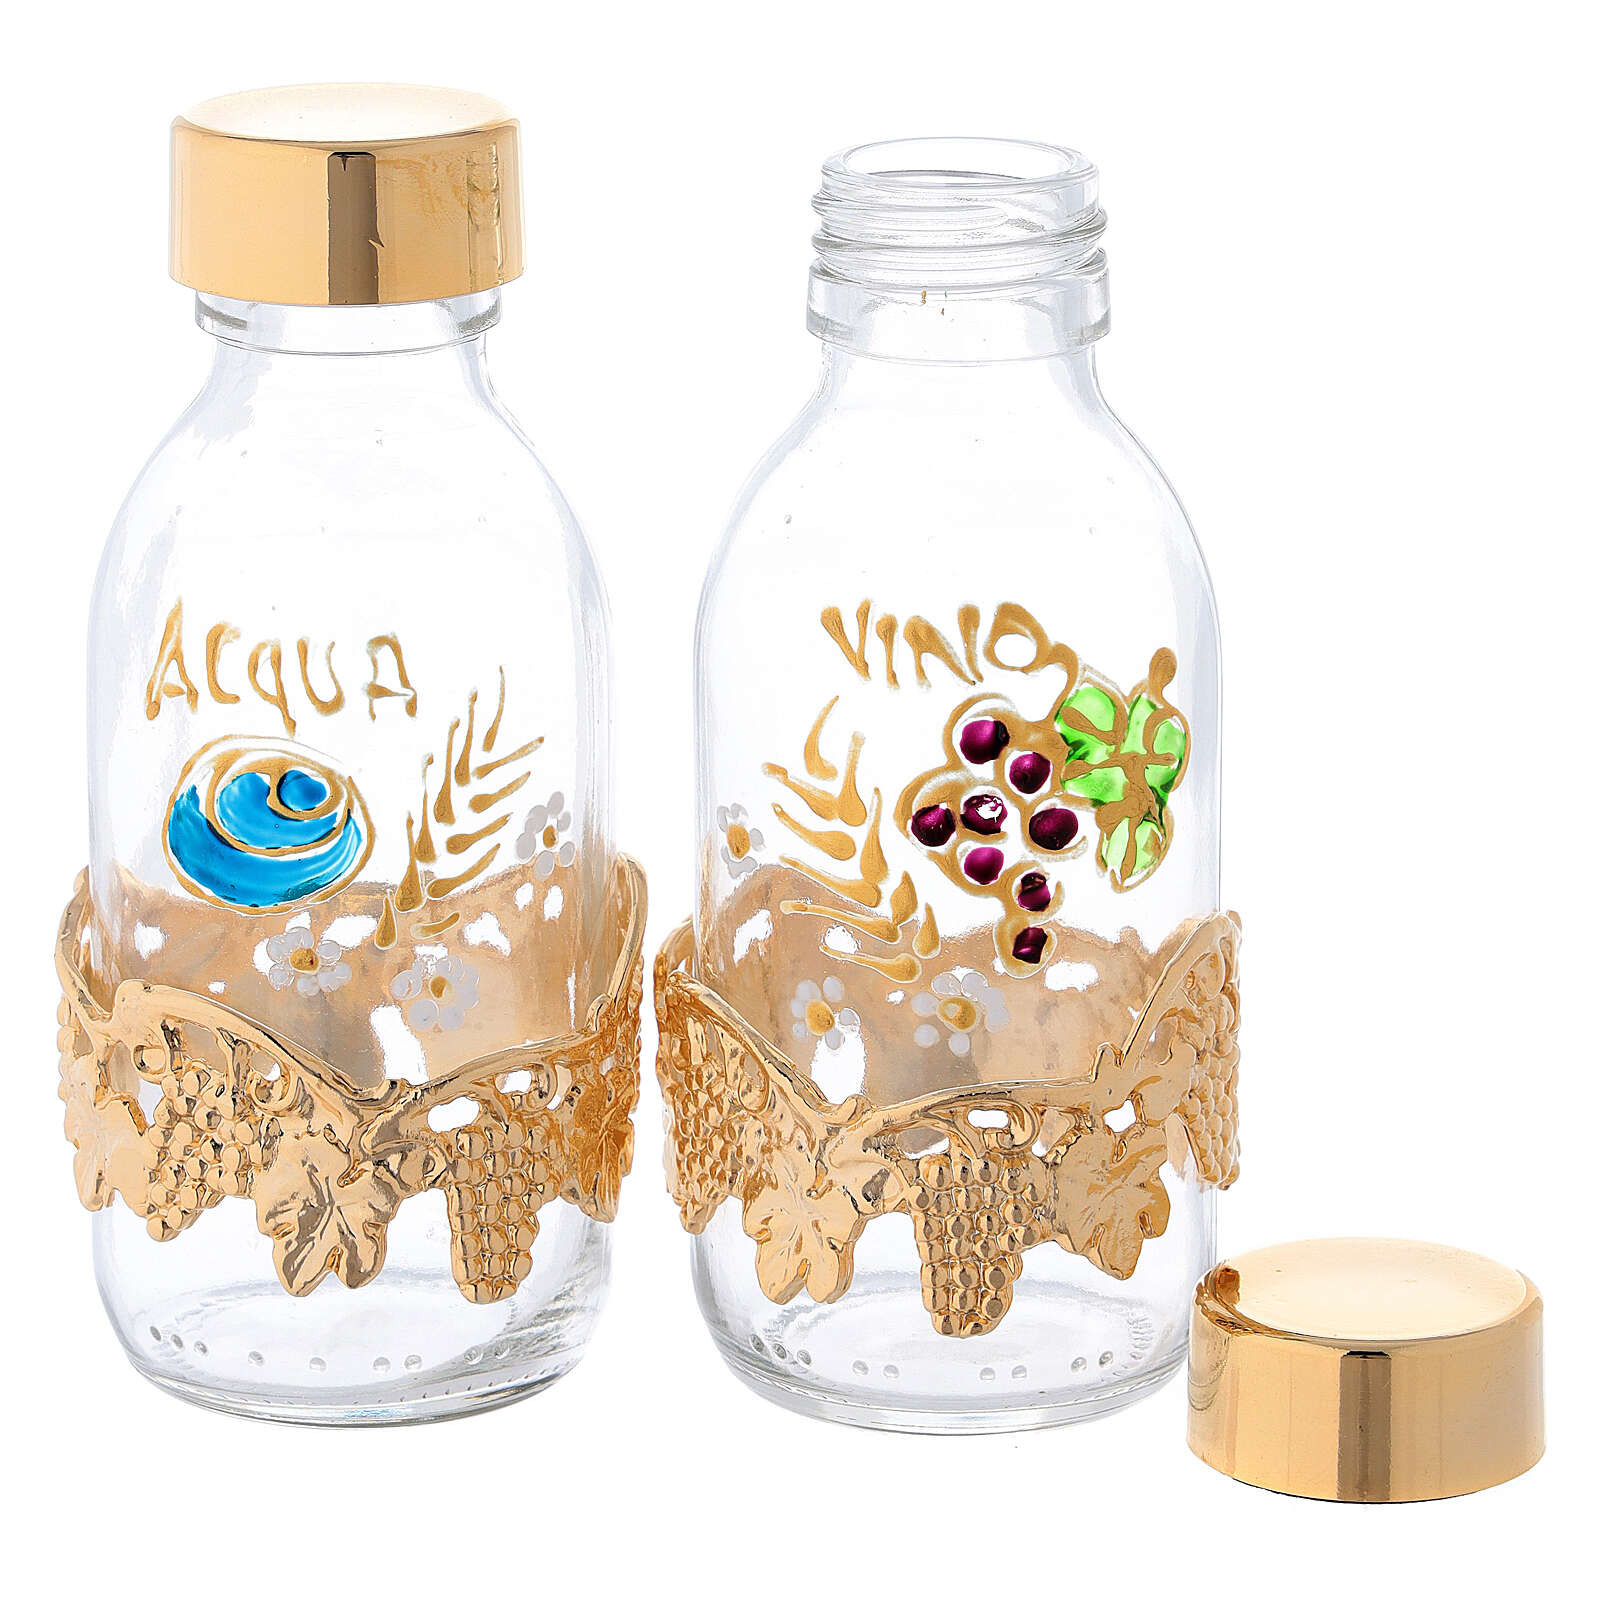 Bottles in glass with grapefruit decoration, golden 125 ml 4